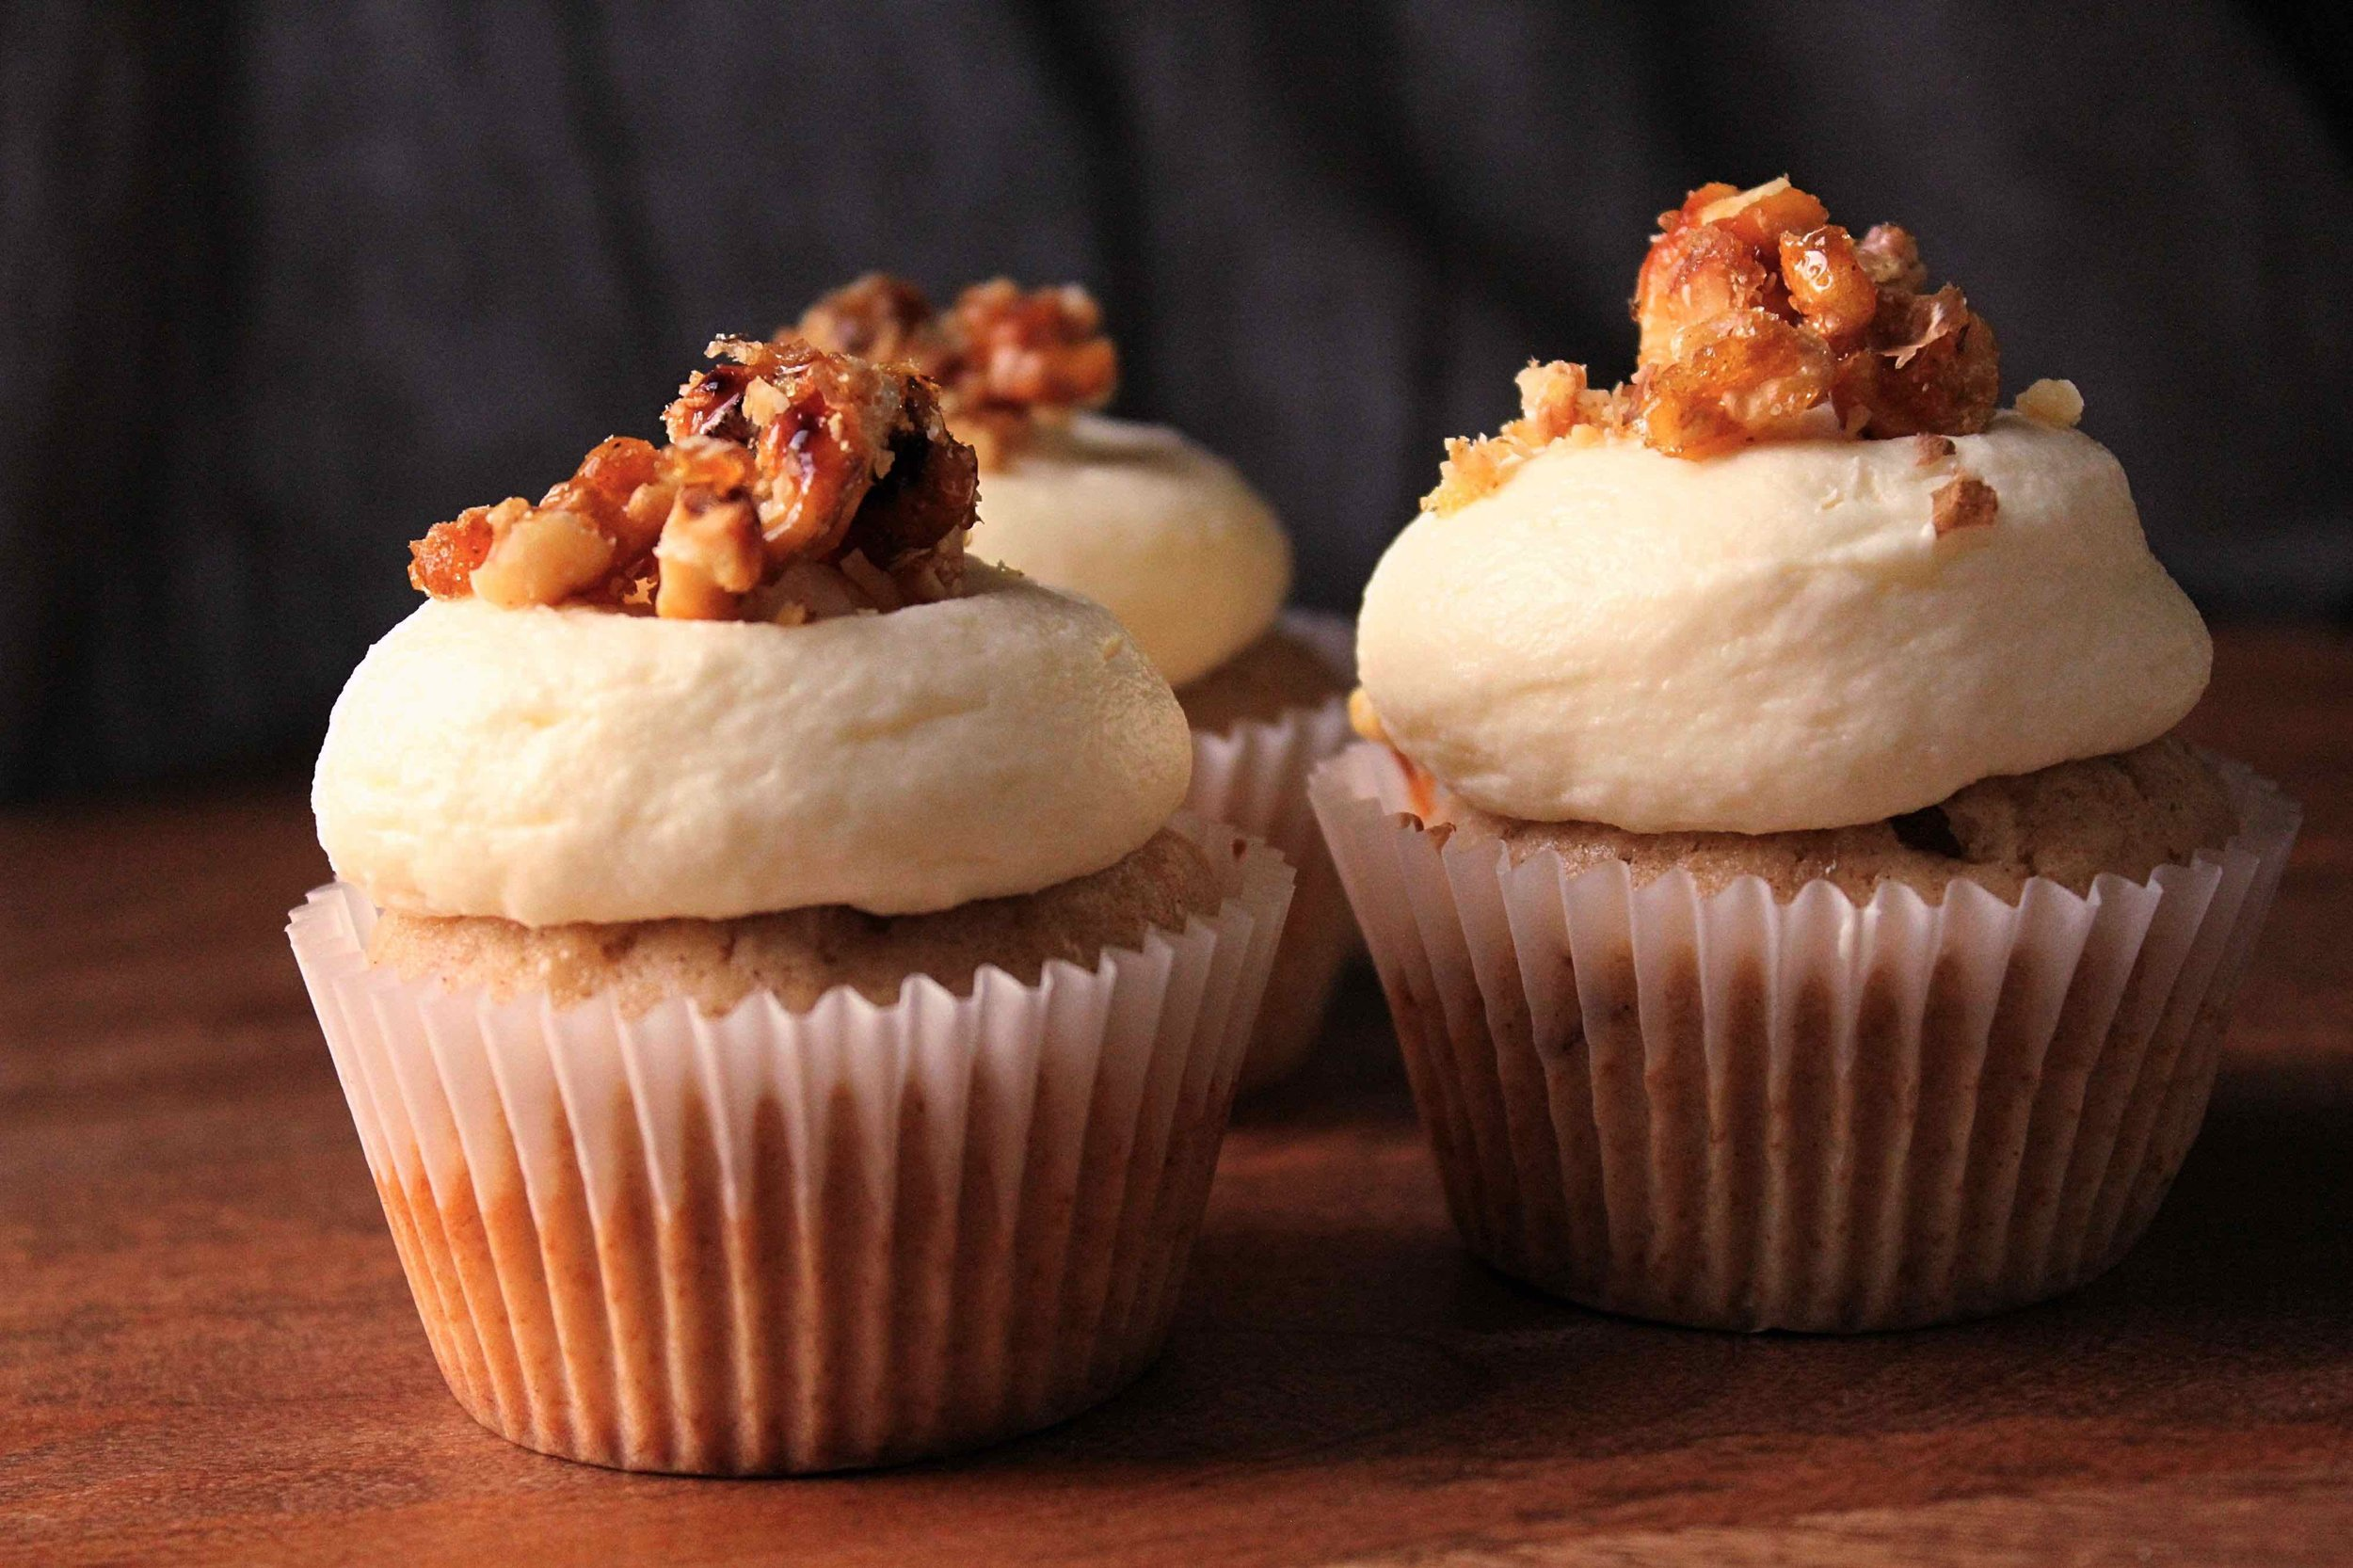 Brown Butter Banana Cupcakes with Cream Cheese Frosting and Candied Walnuts